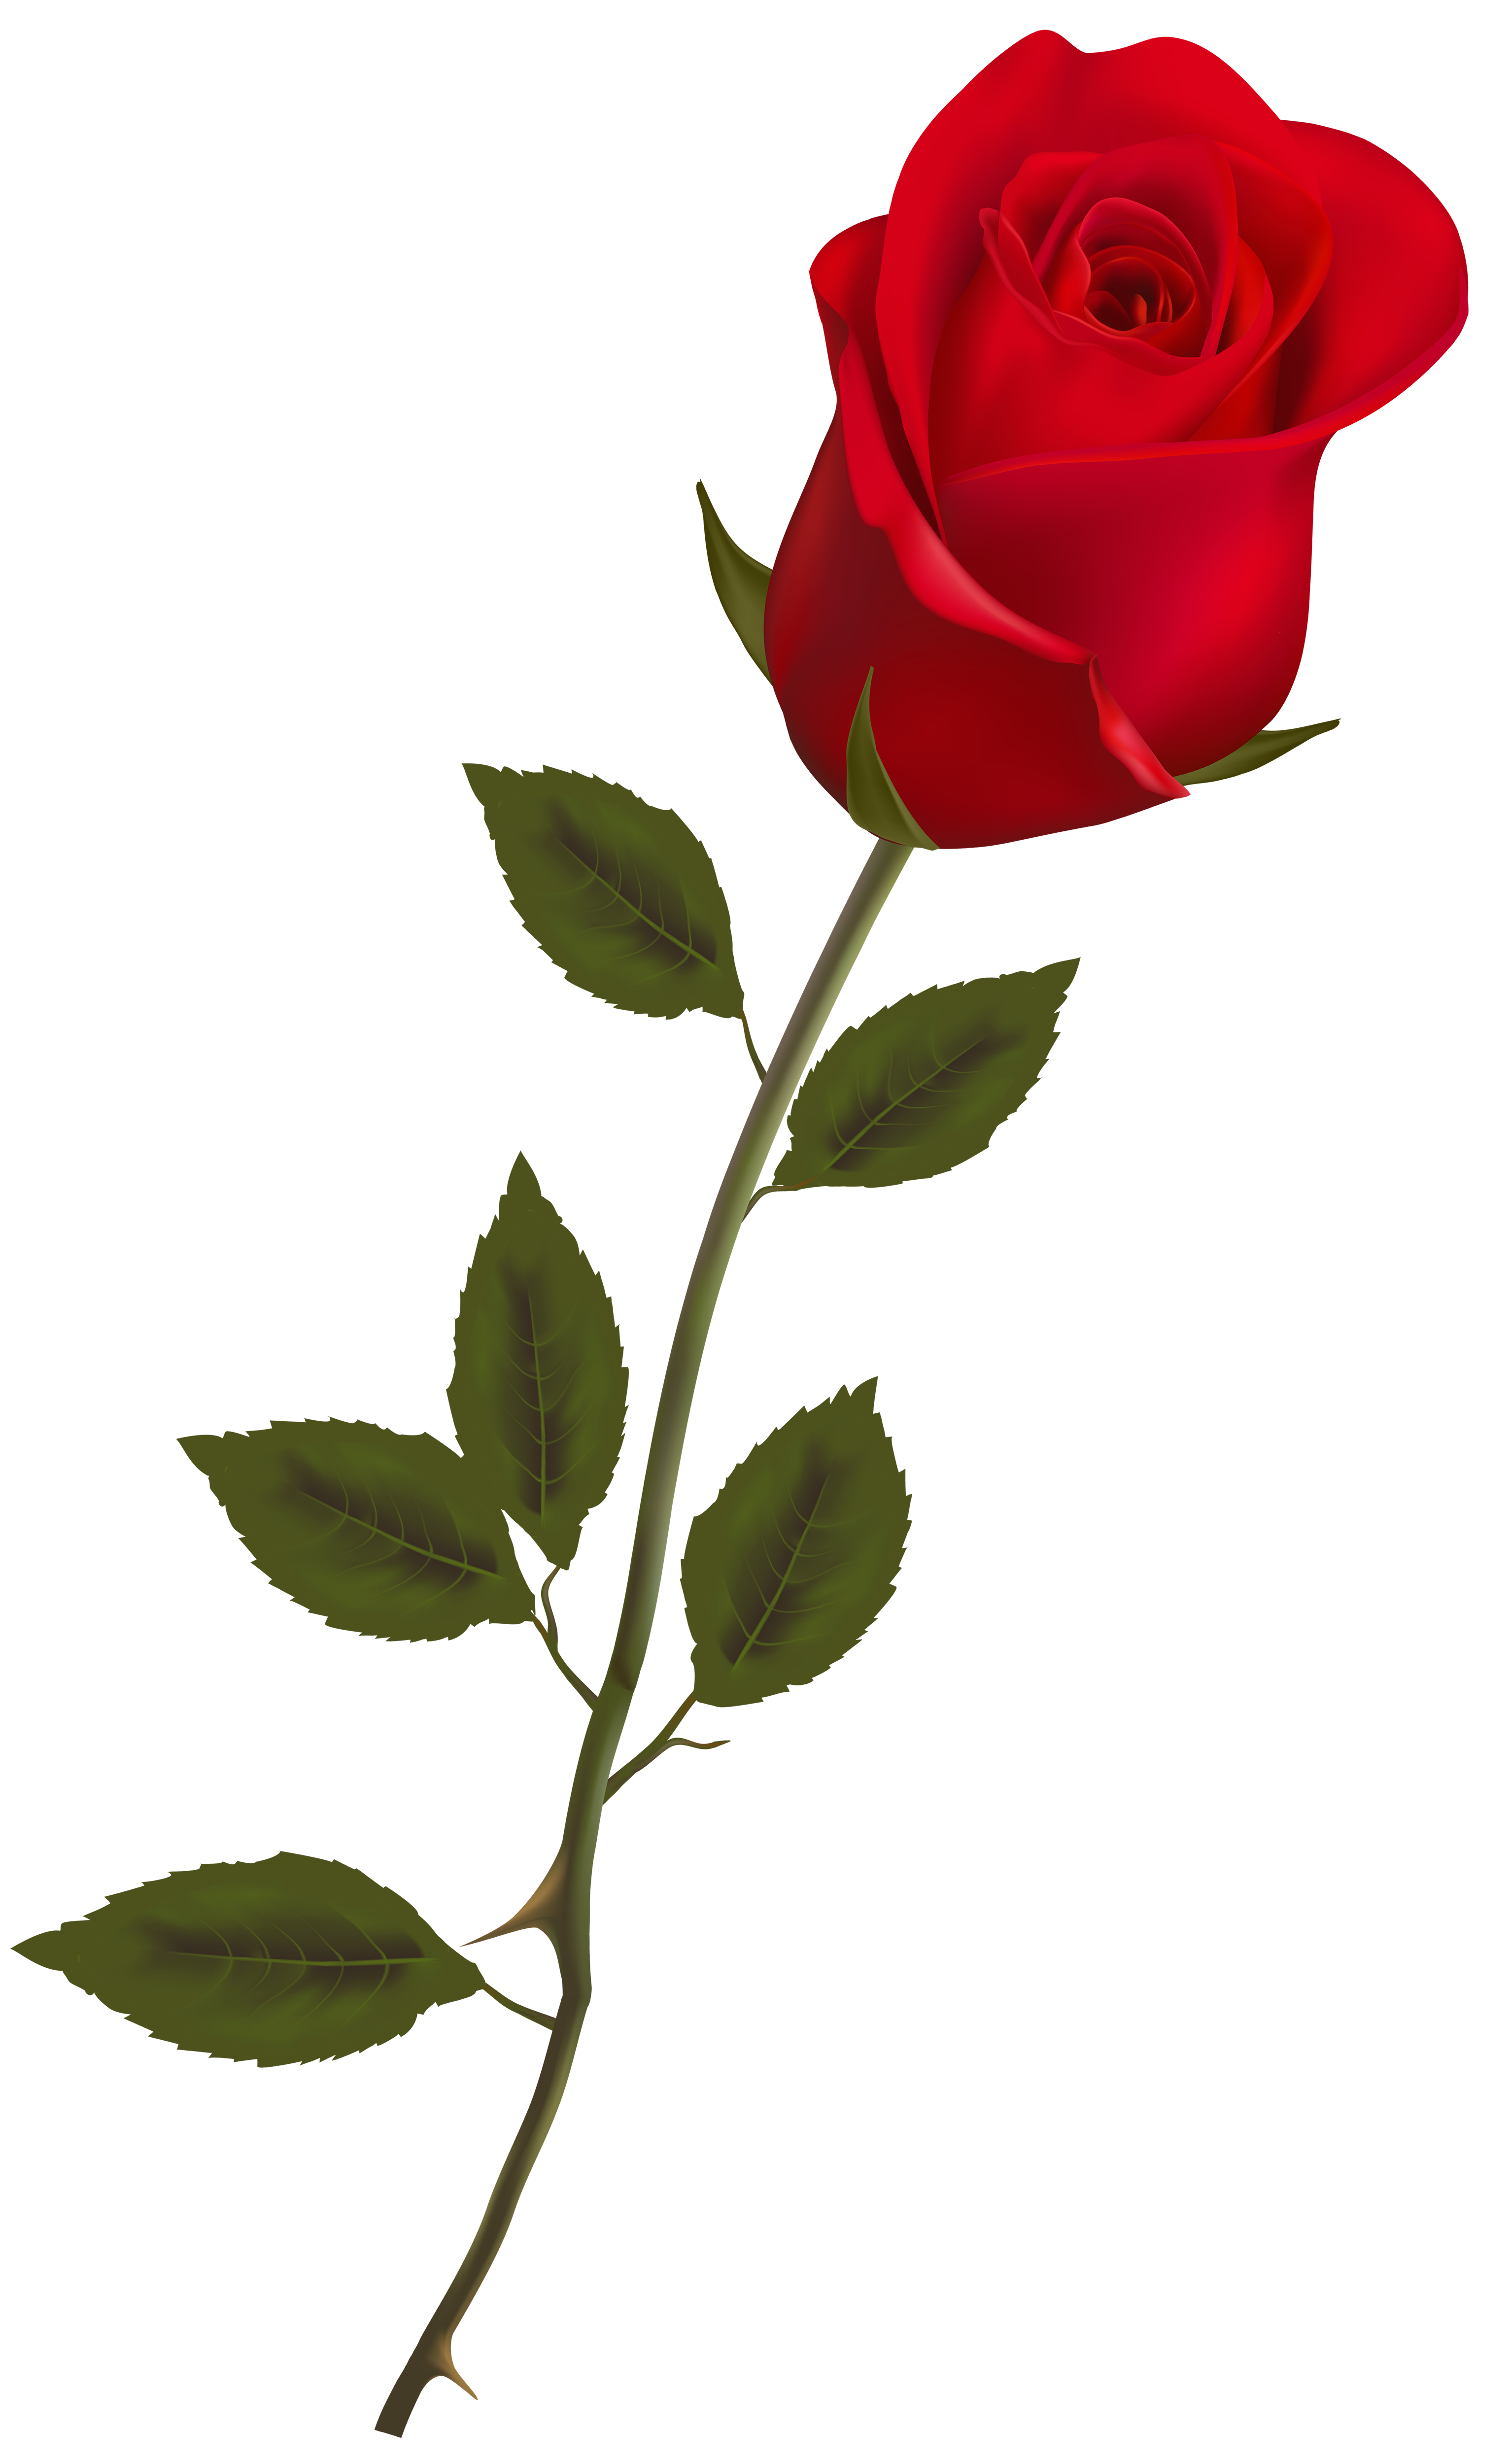 Lavender clipart stem. Beautiful red rose png